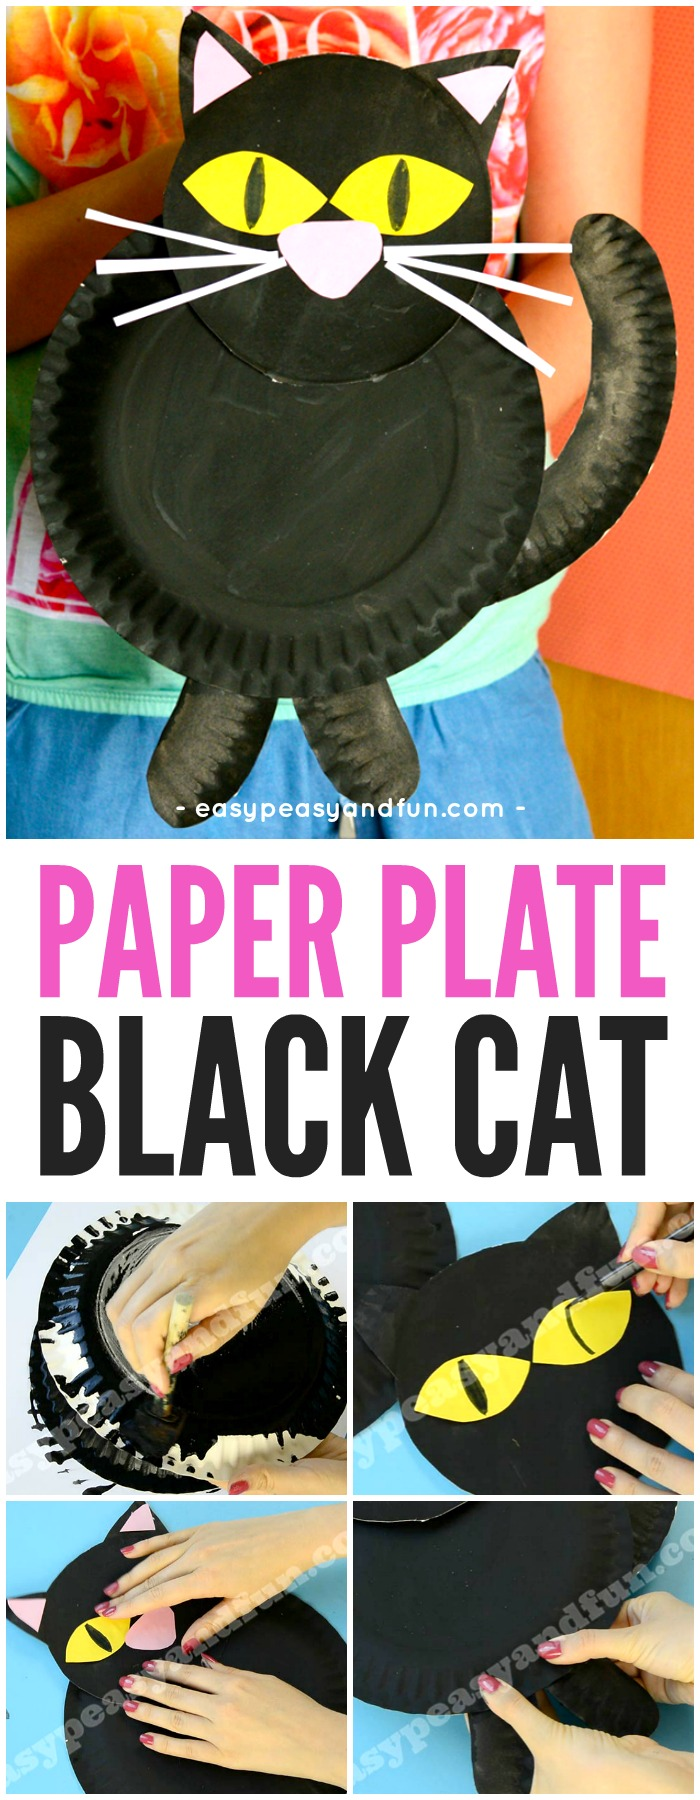 Black Cat Halloween Paper Plate Craft for Kids